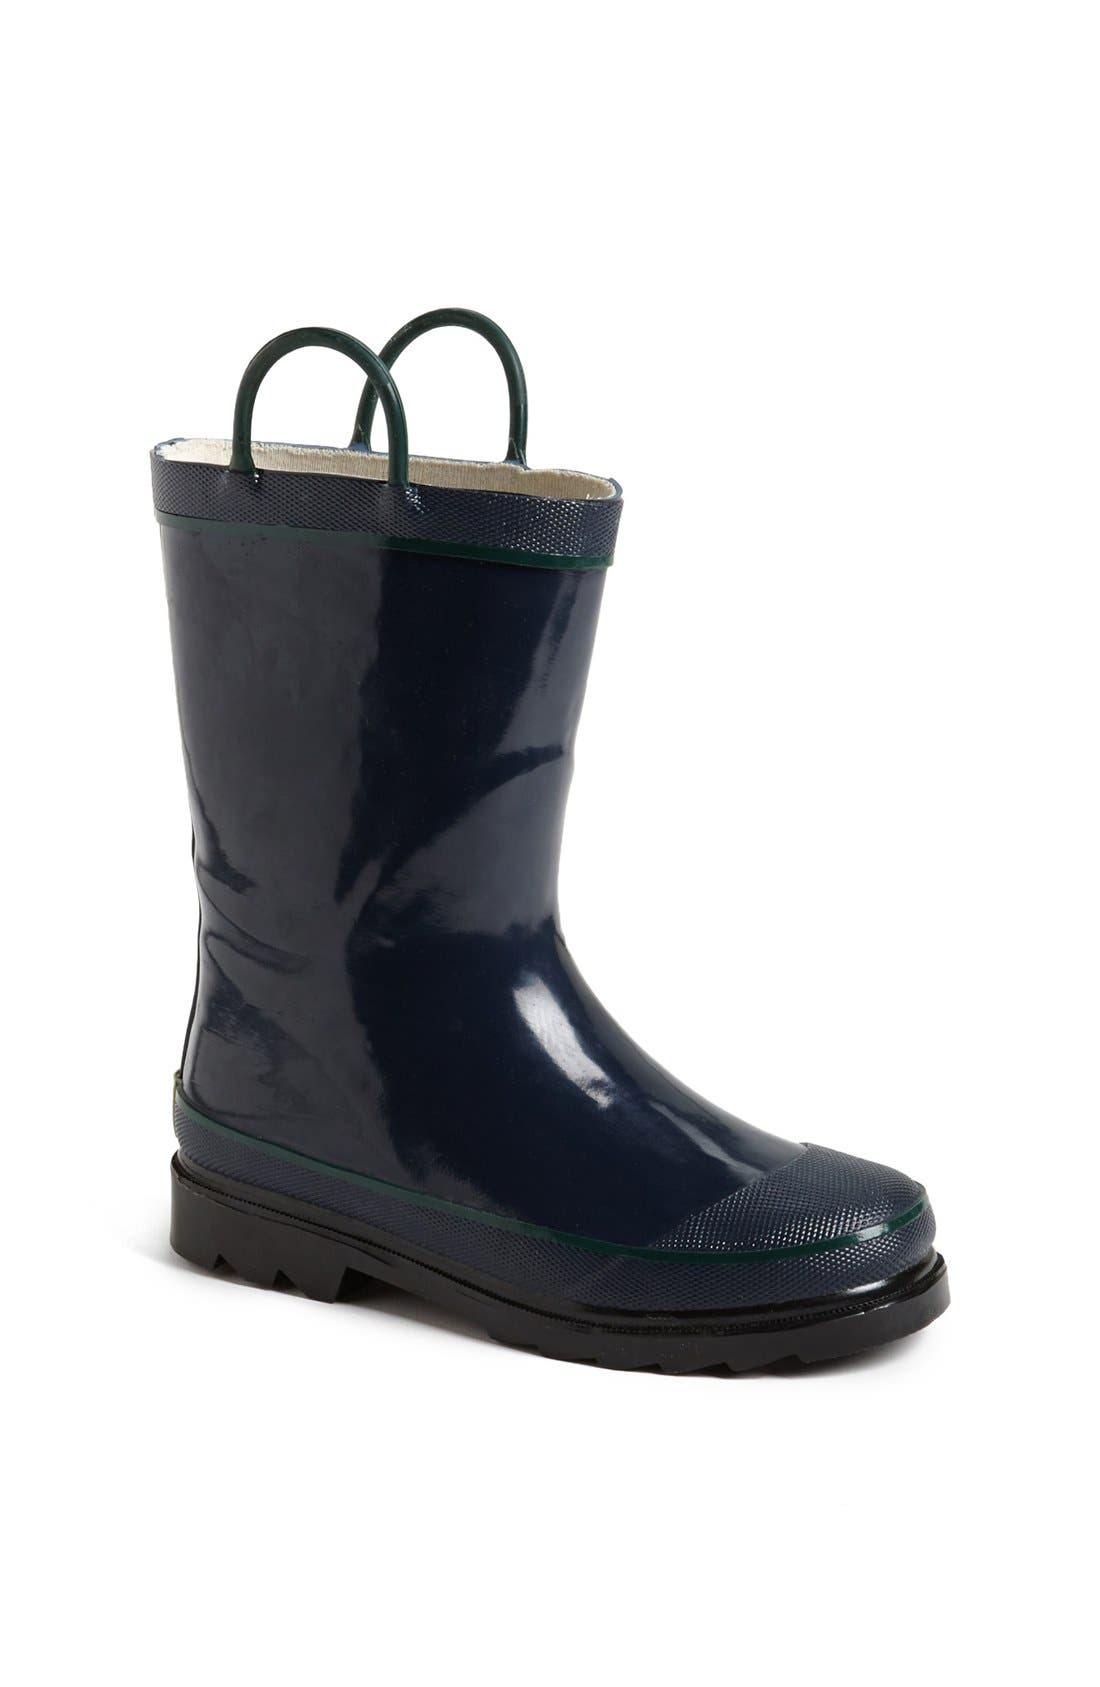 Nordstrom 'Firechief 2' Rain Boot WESTERN CHIEF $24.95